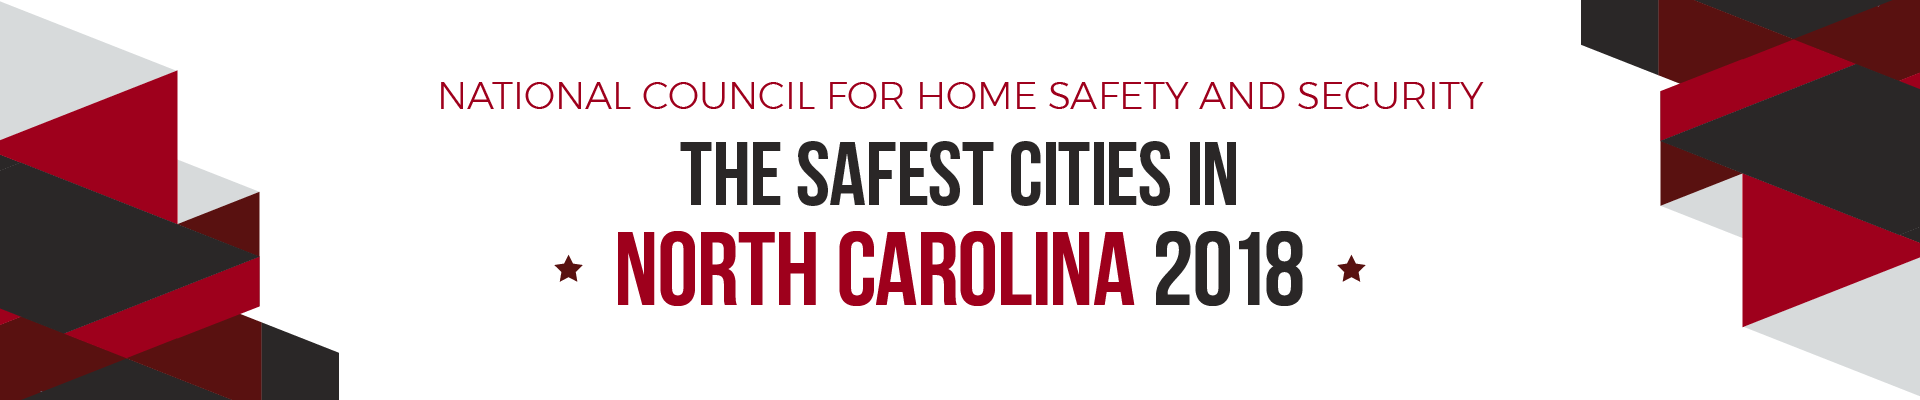 safe cities north carolina 2018